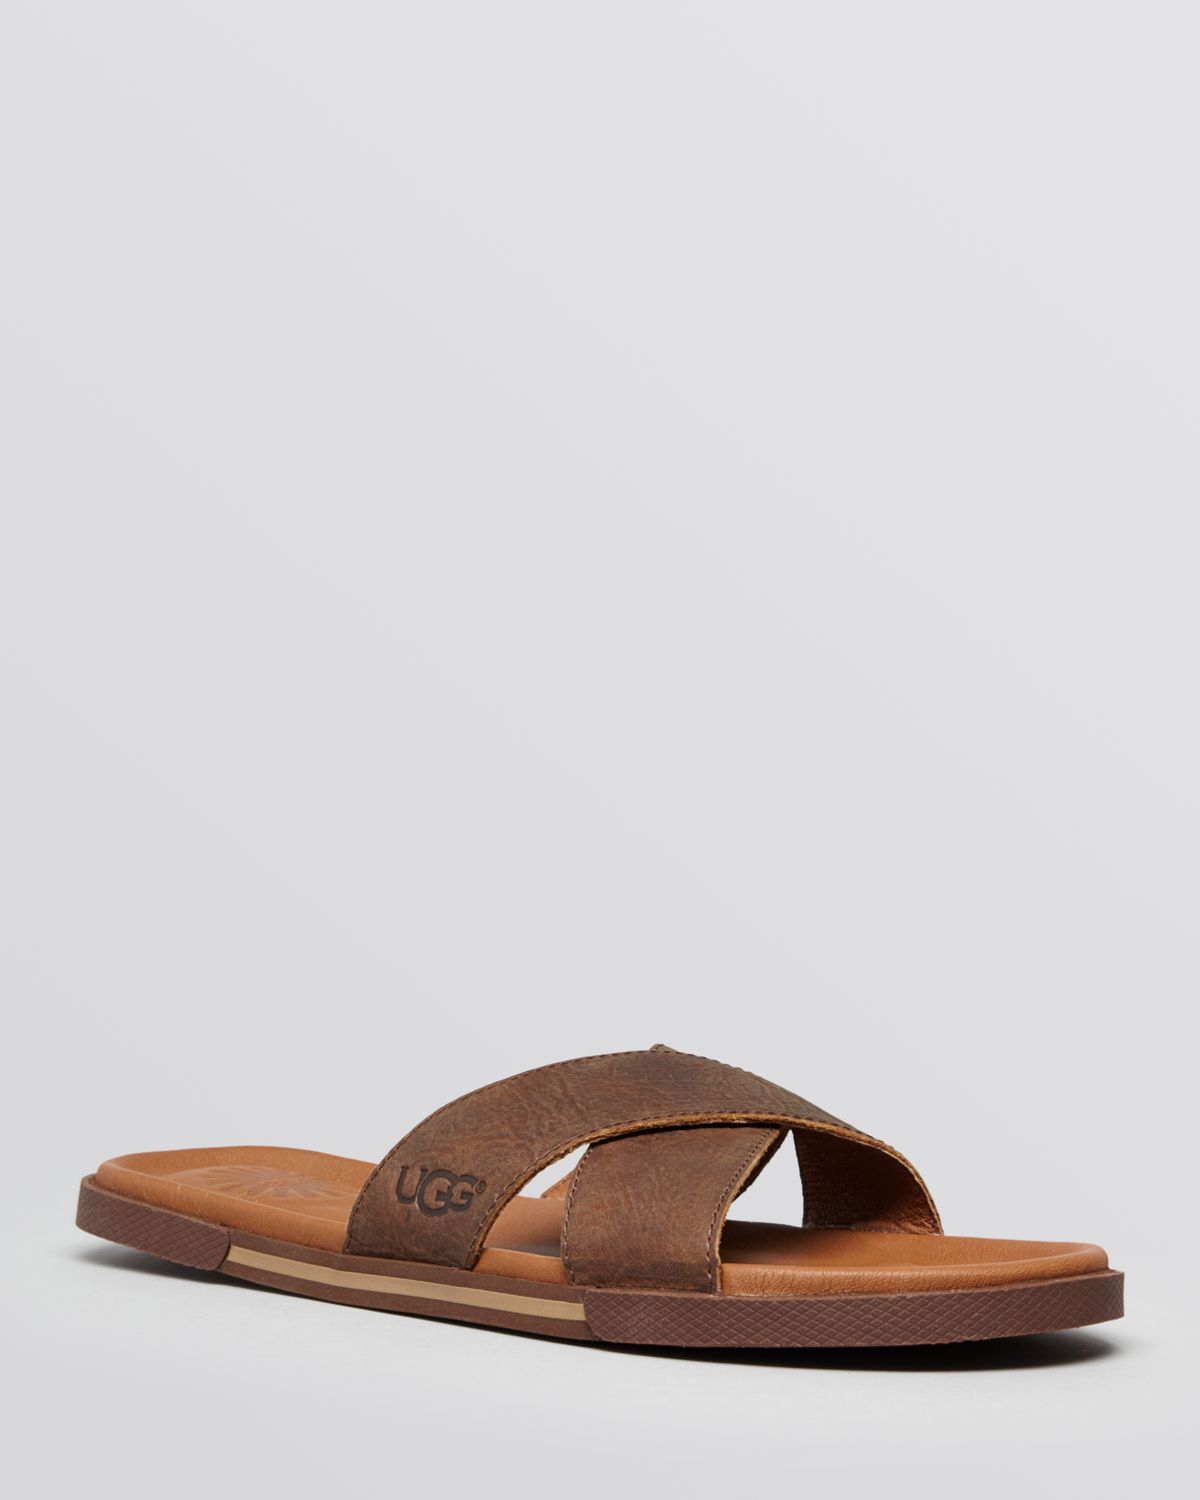 f043ccd2c72b Lyst - UGG Ithan Slide Sandals in Brown for Men